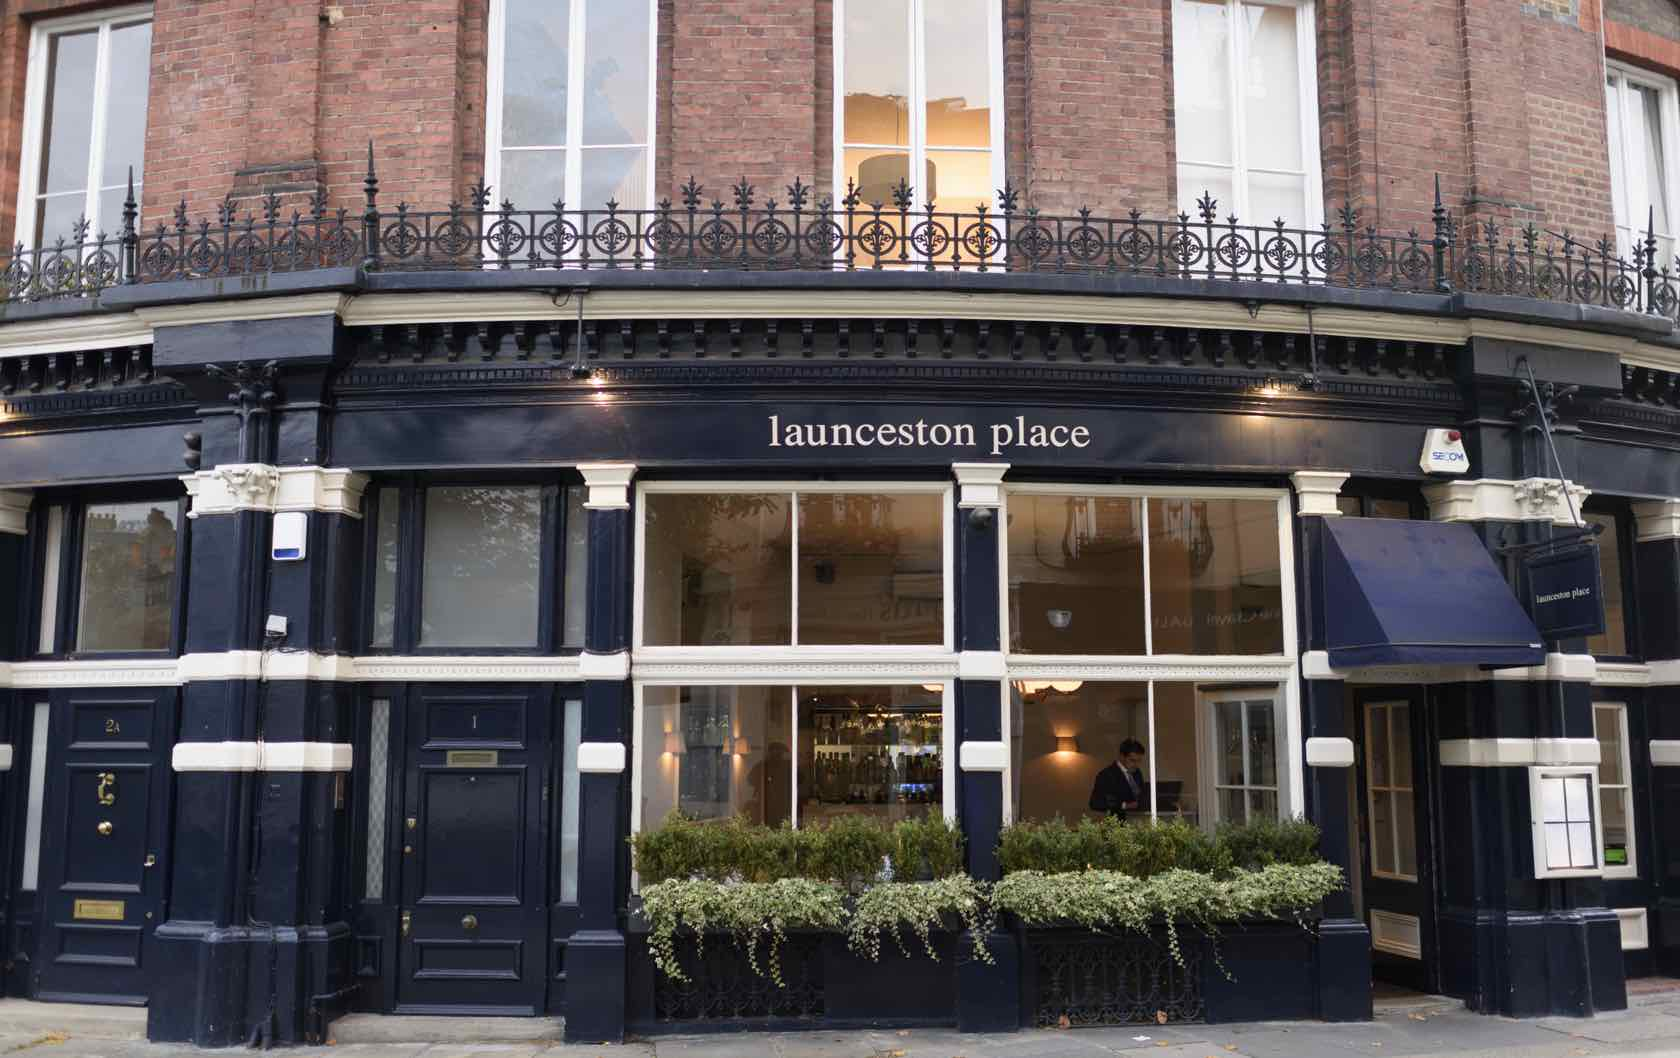 launceston place kensington london